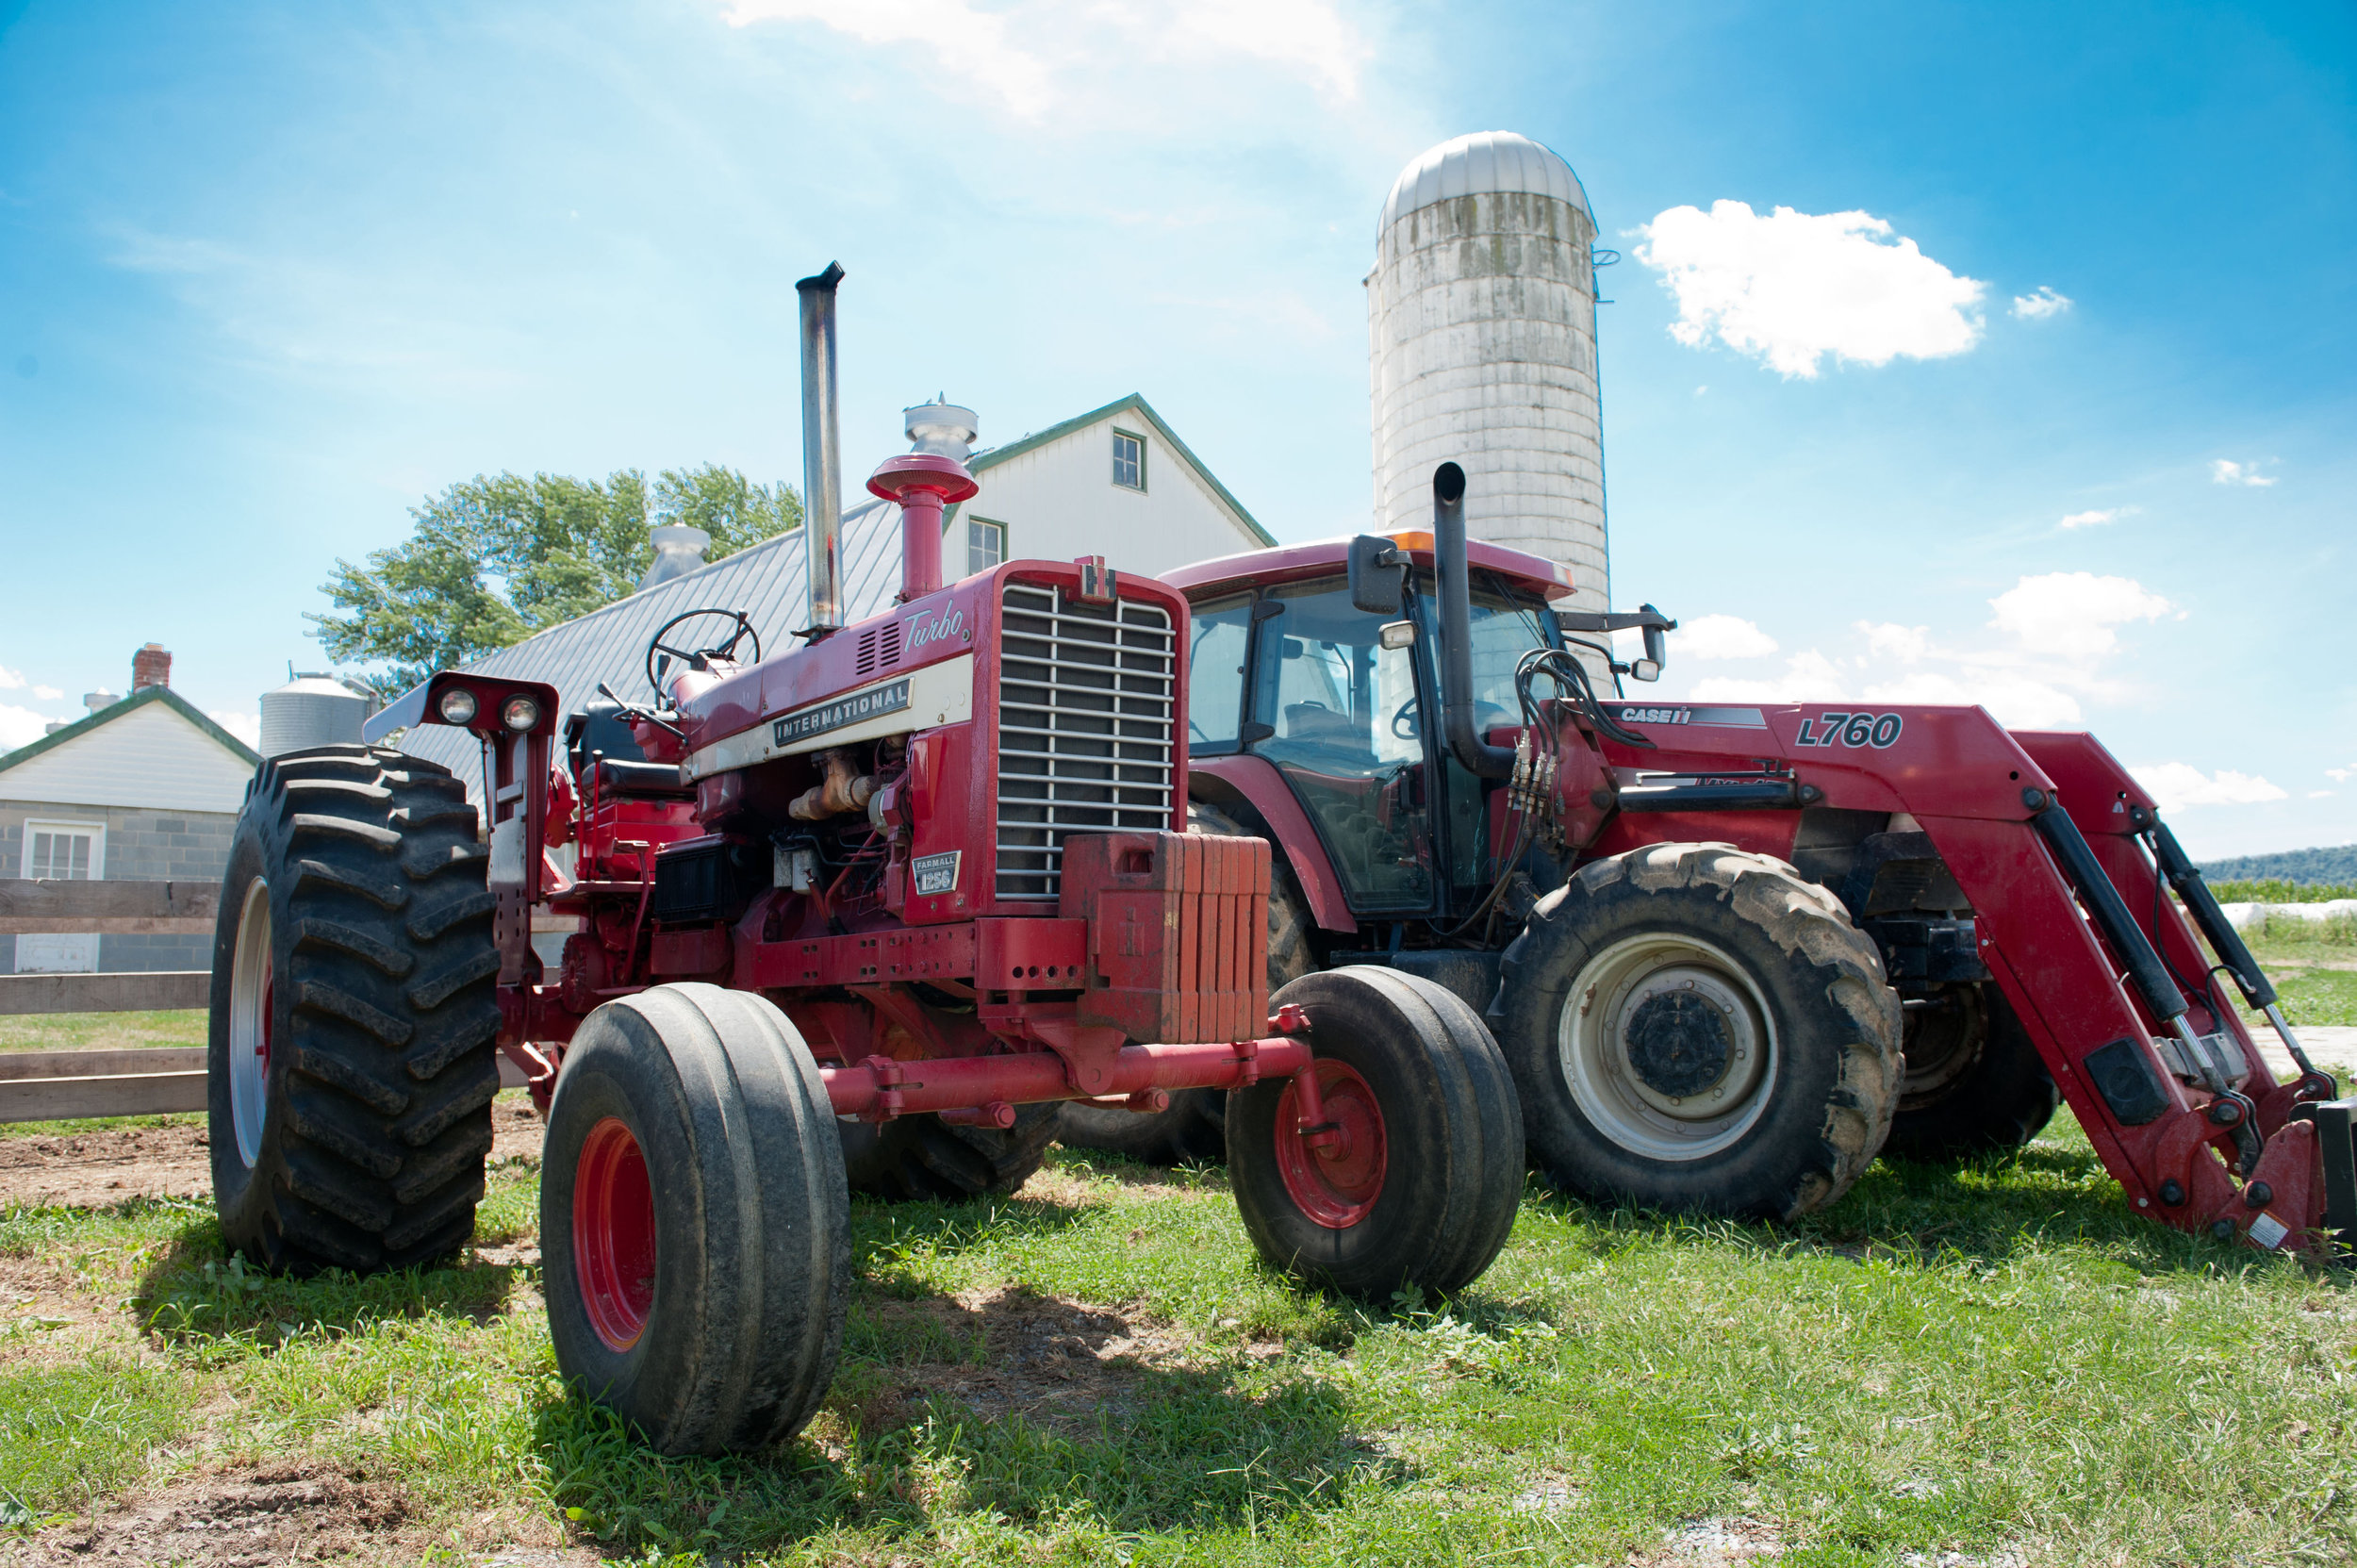 Image of tractors. Photo Credit Edwin Remsberg